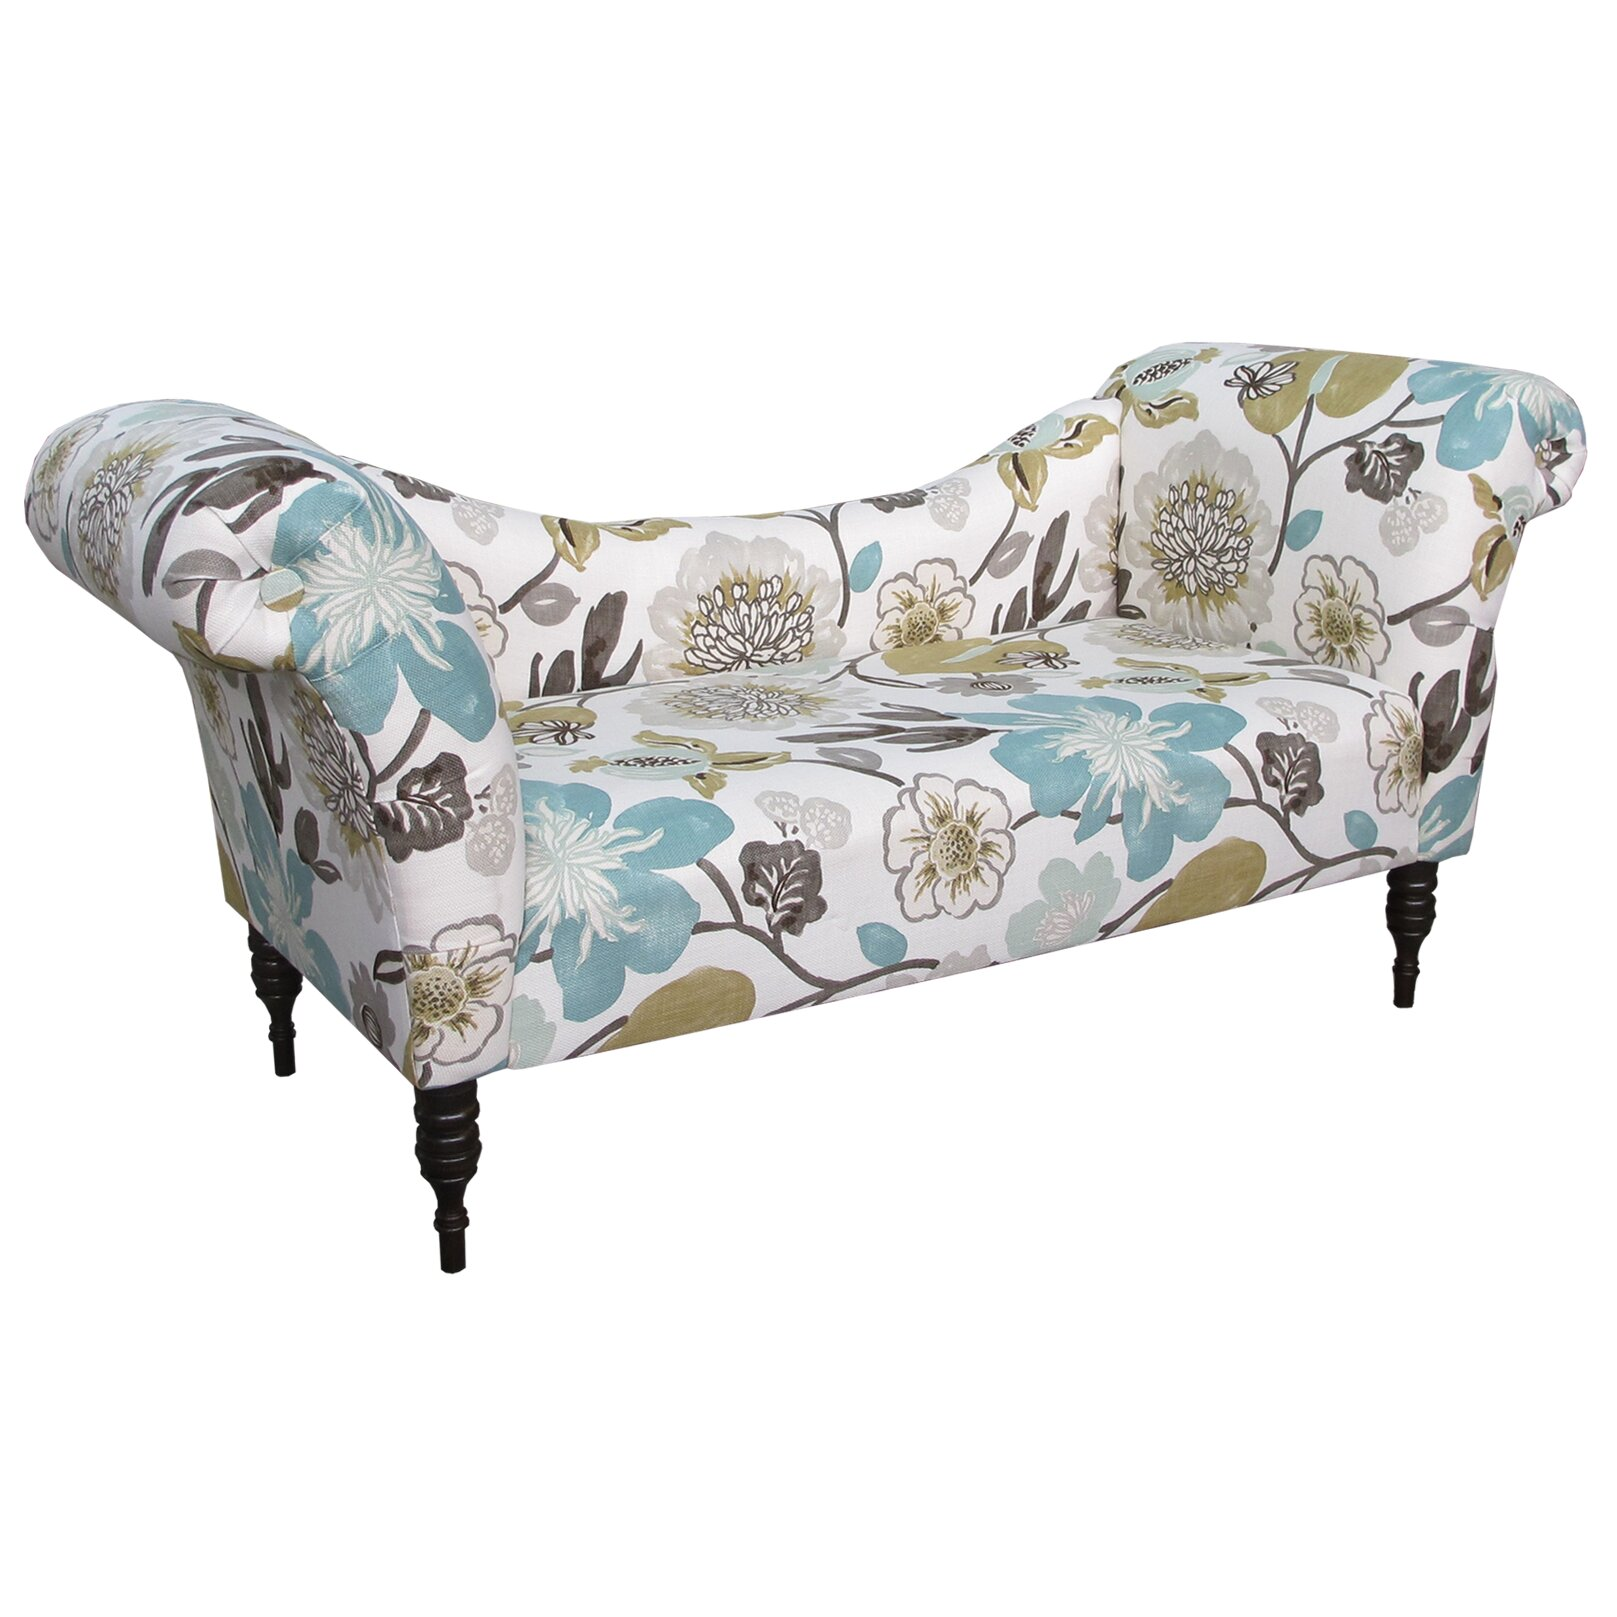 skyline furniture gorgeous roll arm chaise lounge reviews wayfair. Black Bedroom Furniture Sets. Home Design Ideas